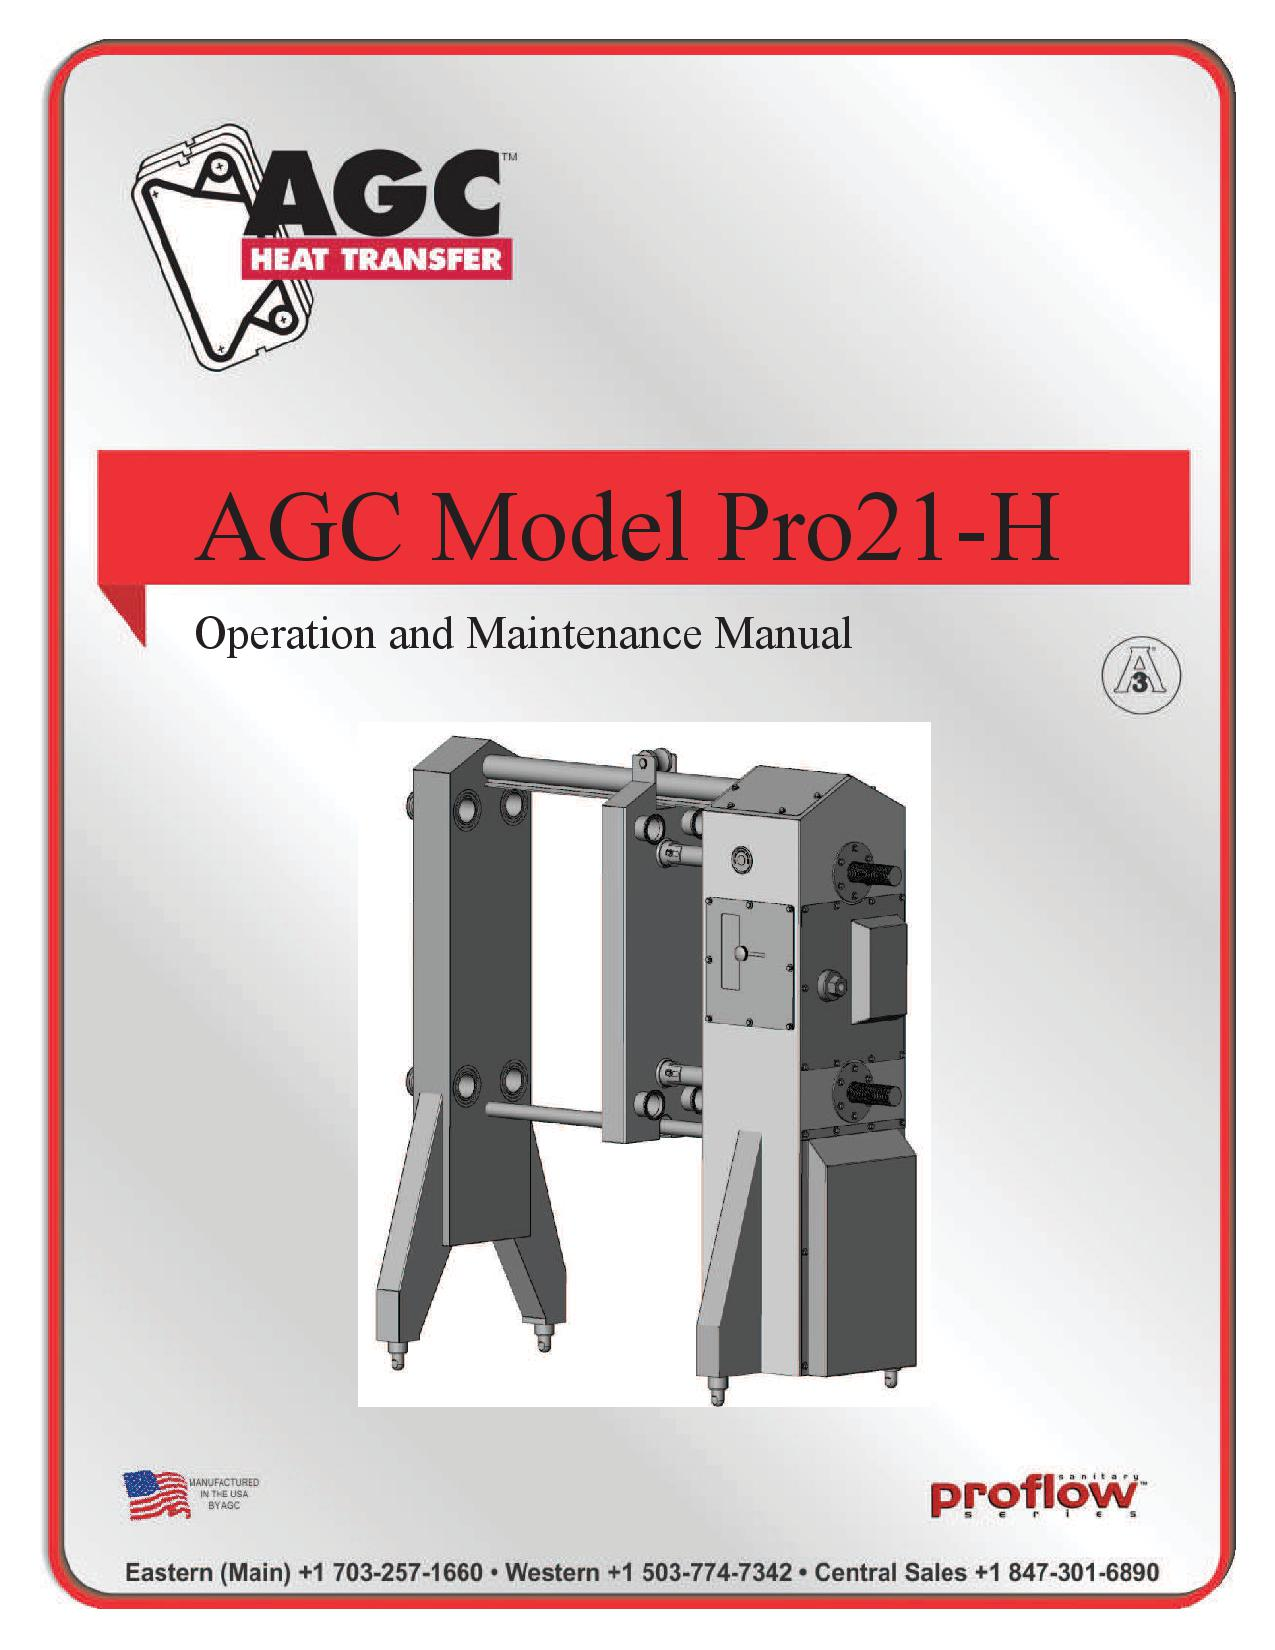 AGC Operating Manual Pro21-H